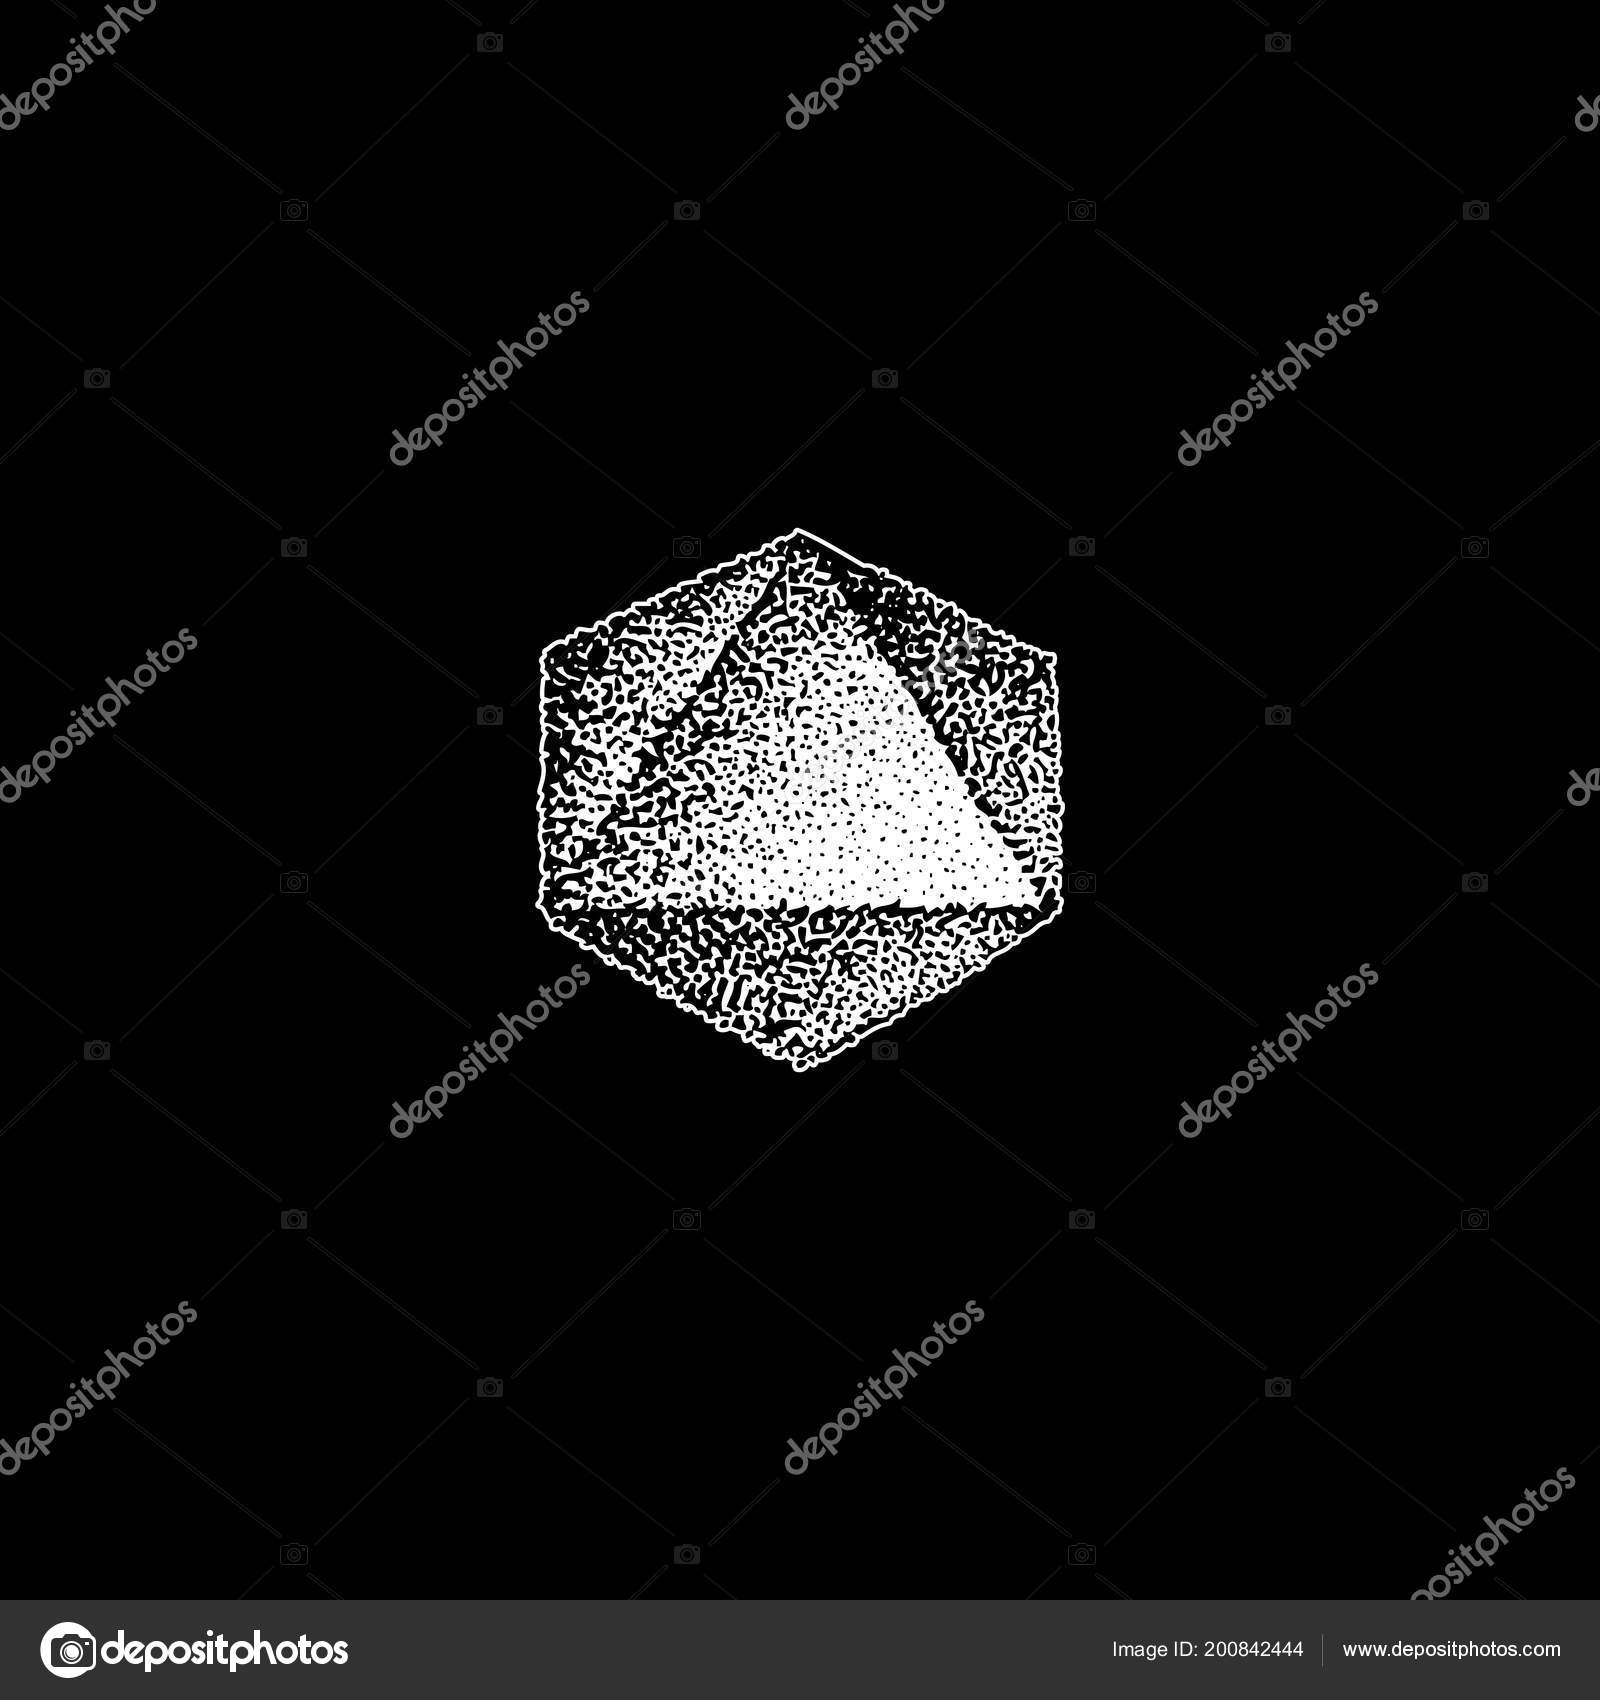 Vector Monochrome White Retro Dot Art Hand Drawn Octahedron Geometric